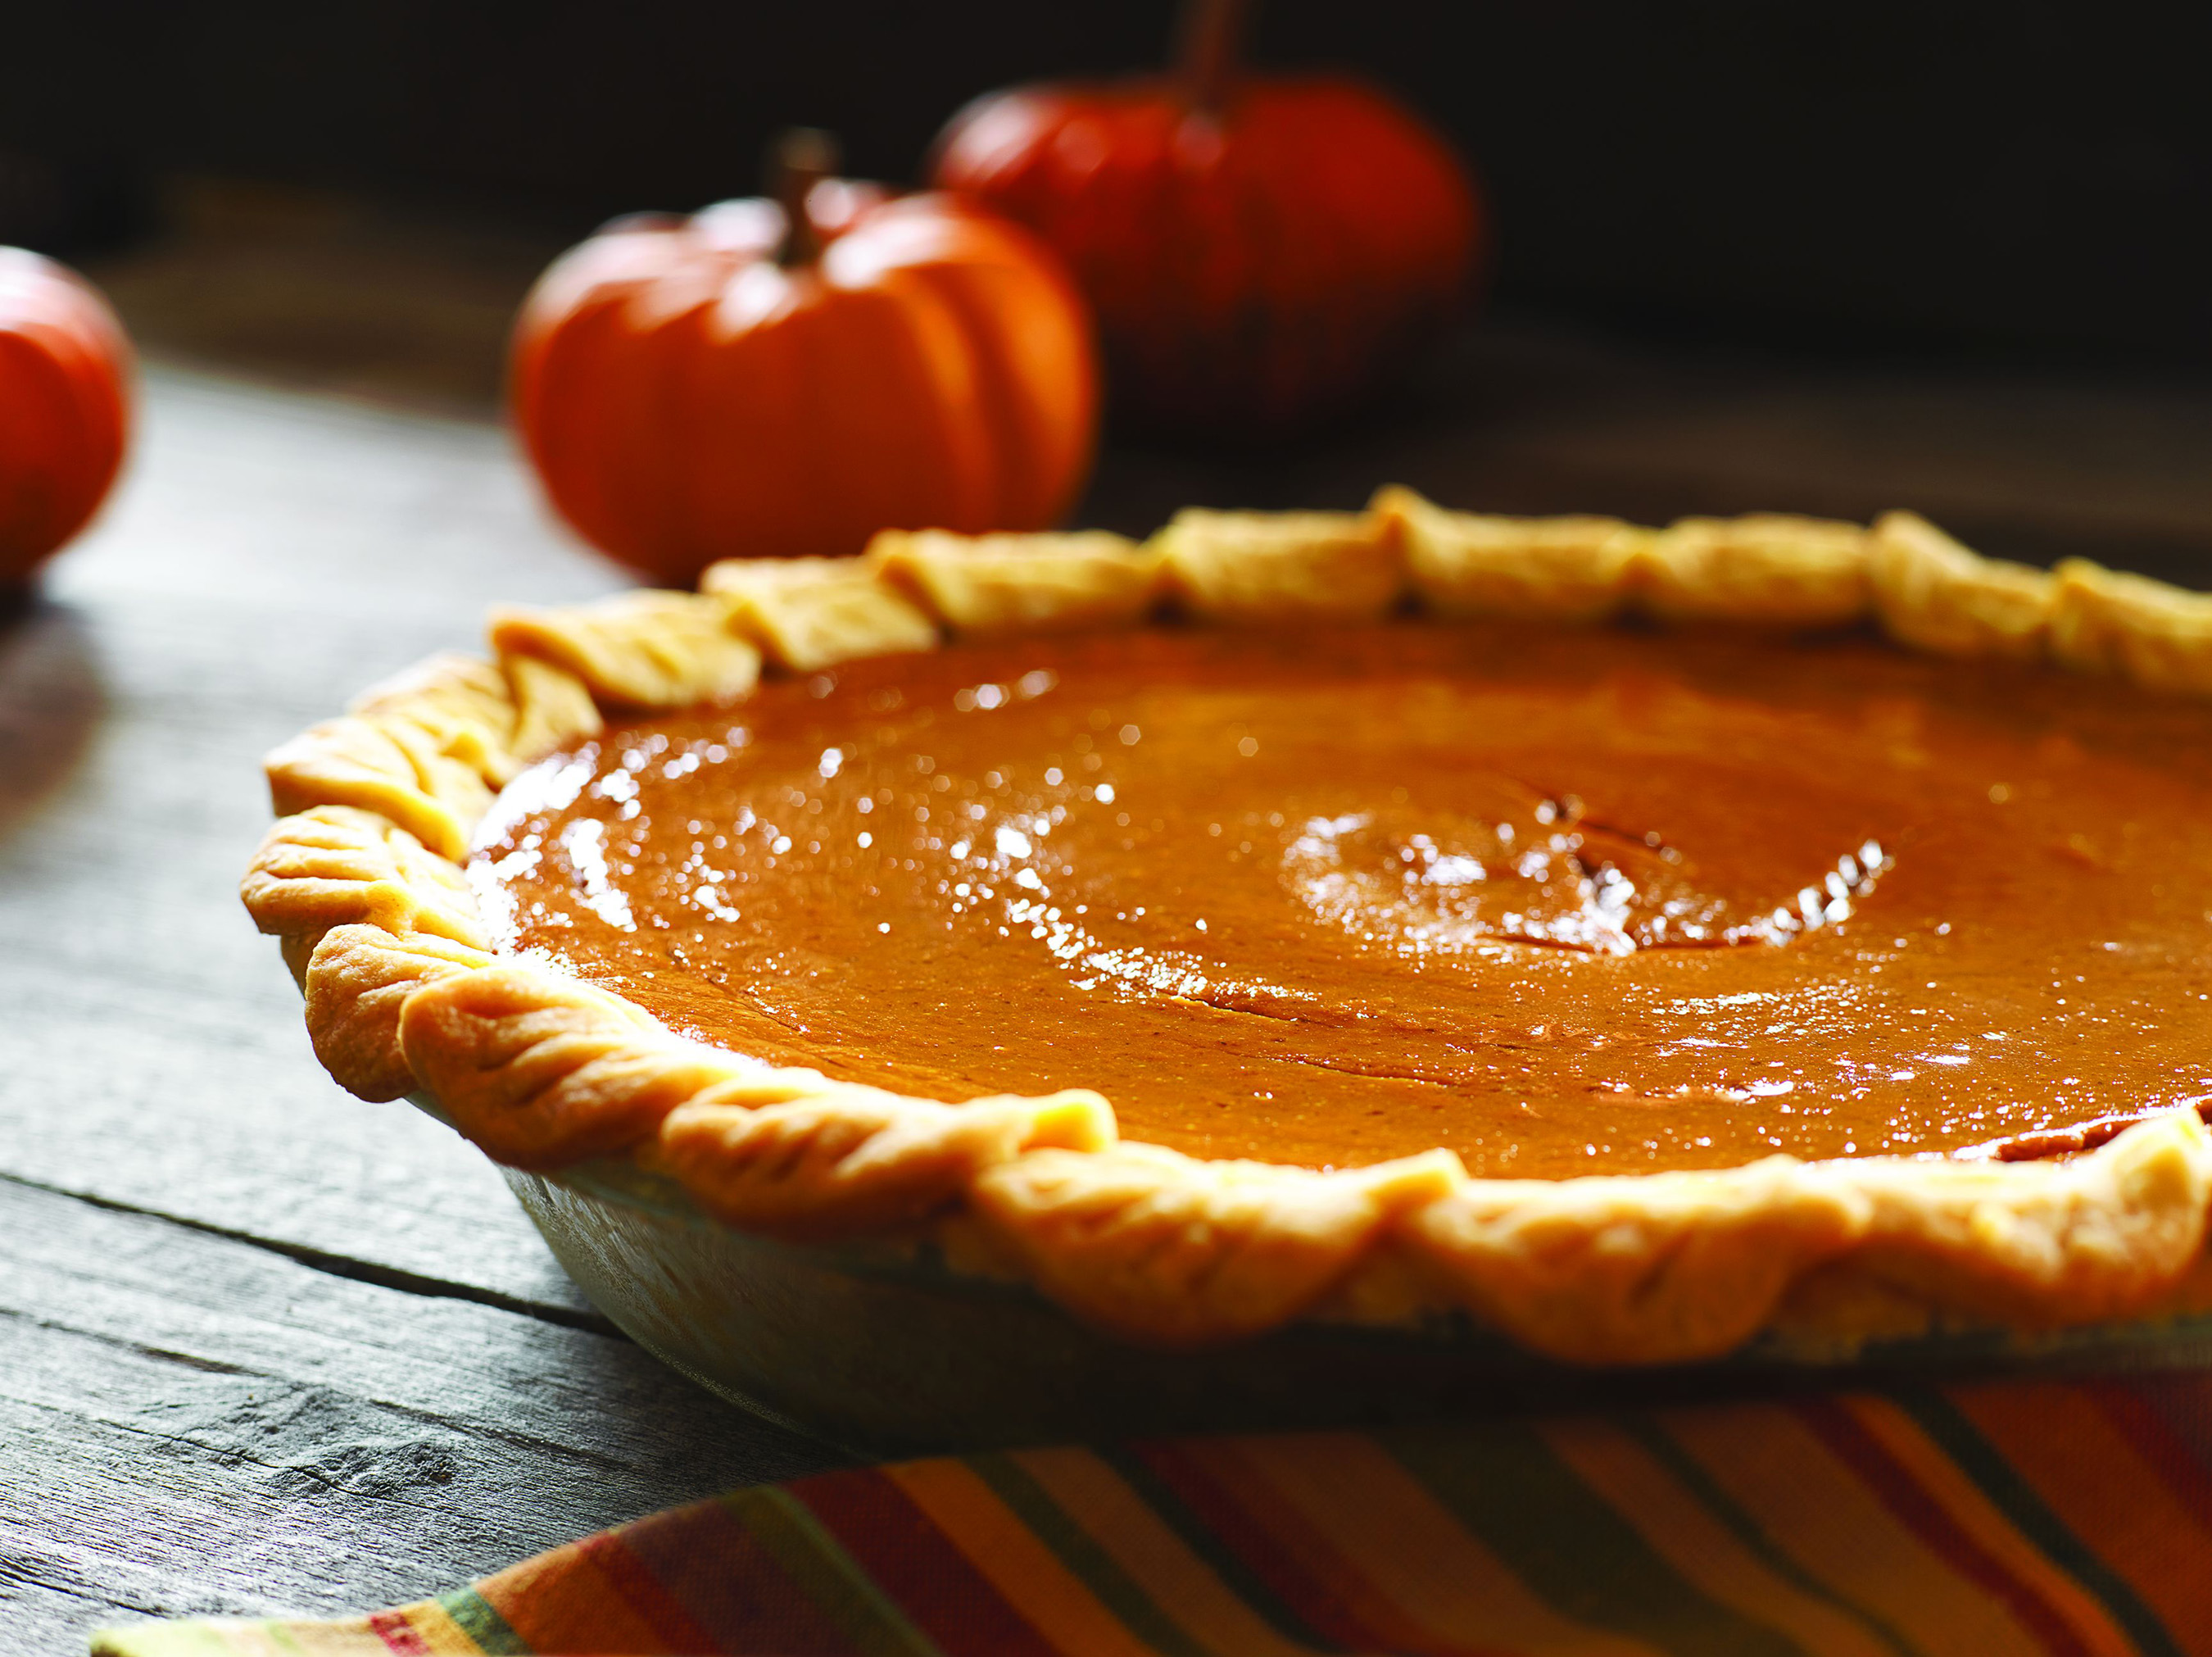 Use Crisco® All-Vegetable Shortening to make a tasty, flaky pie crust the whole family will enjoy!